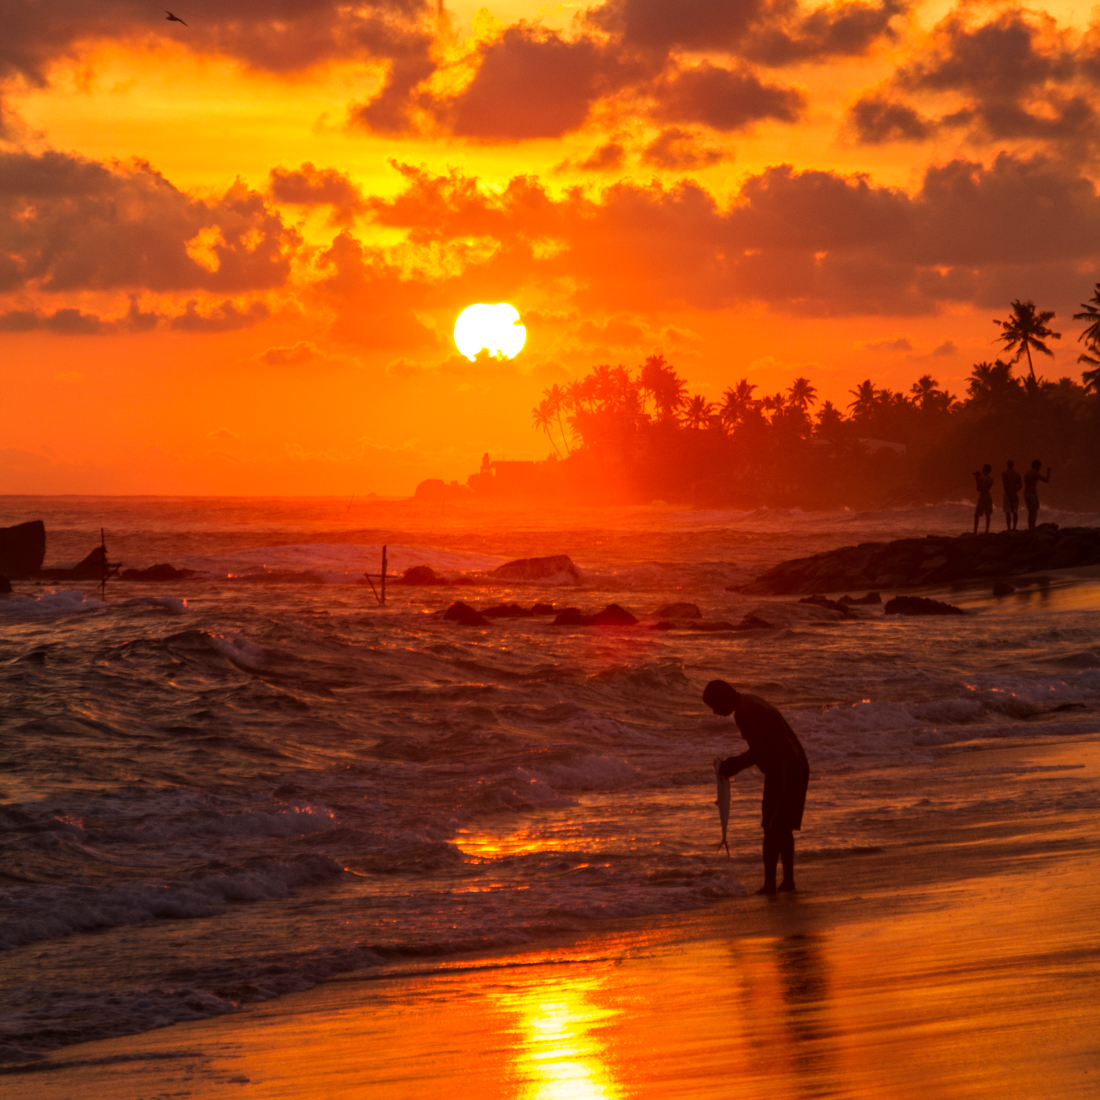 the-sidewalk-secrets-travel-blog-surf-sri-lanka-midigama-mirissa-surfing-sunset-5